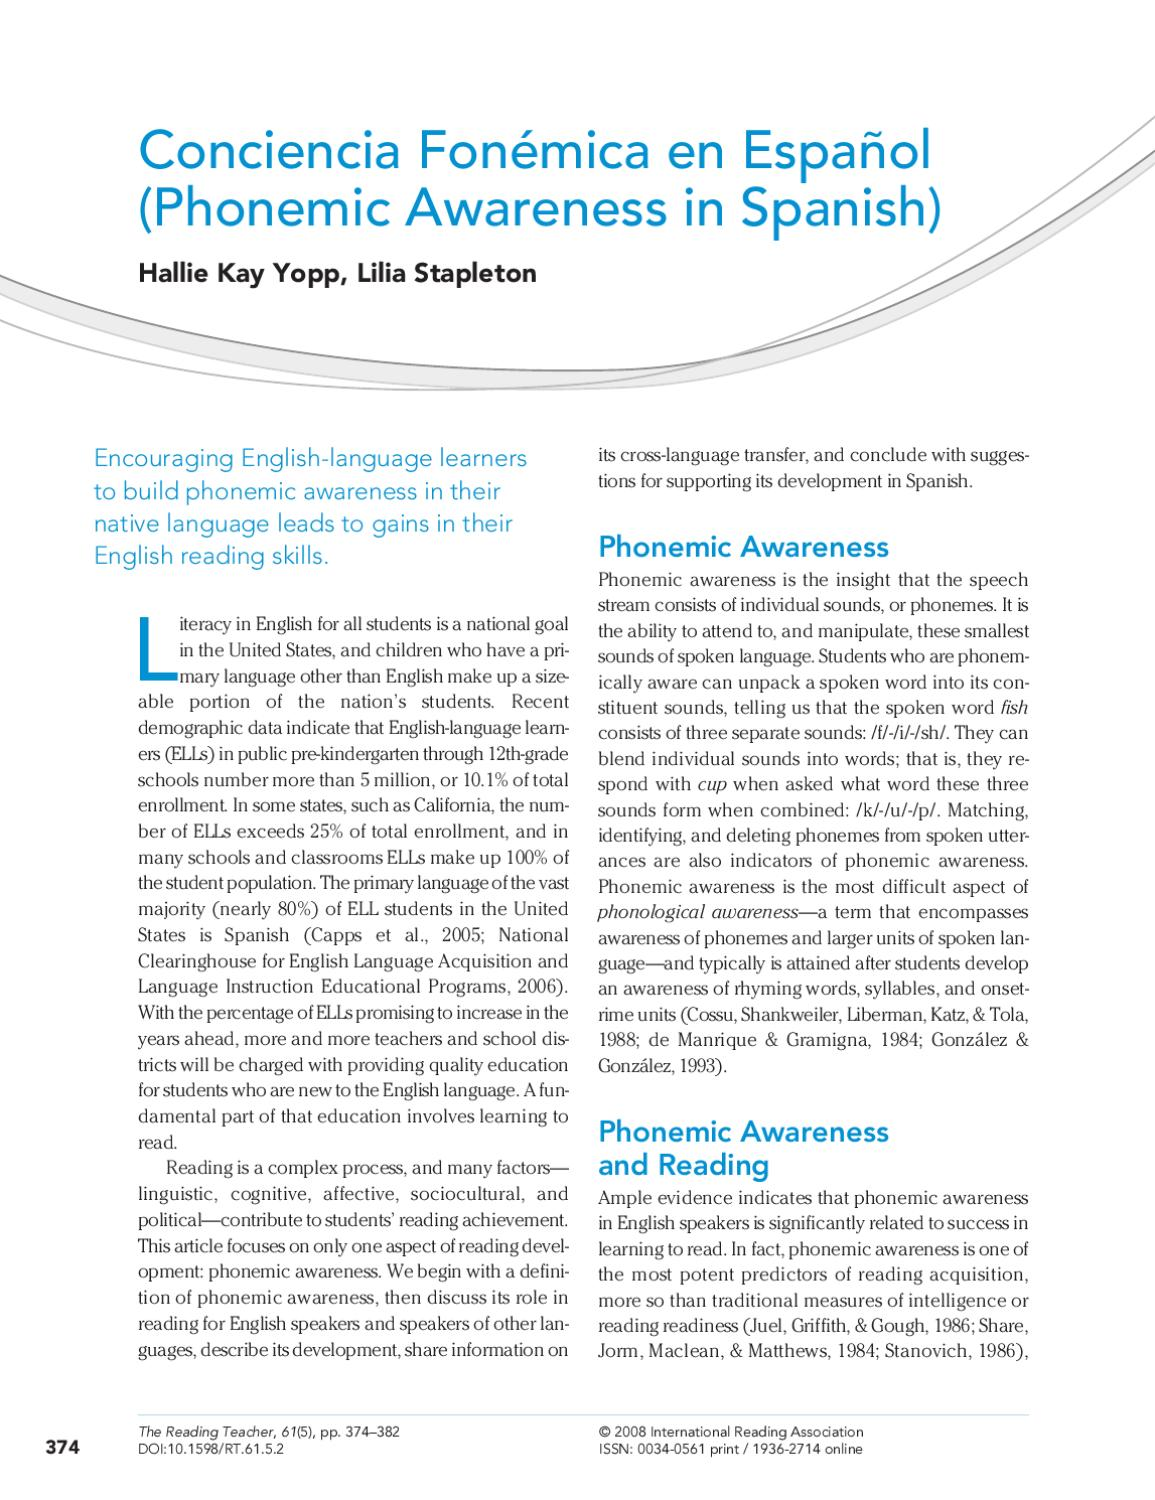 Palabras Que Rimen Con Libro Phonemic Awareness In Spanish By Jkglobal Connections Issuu